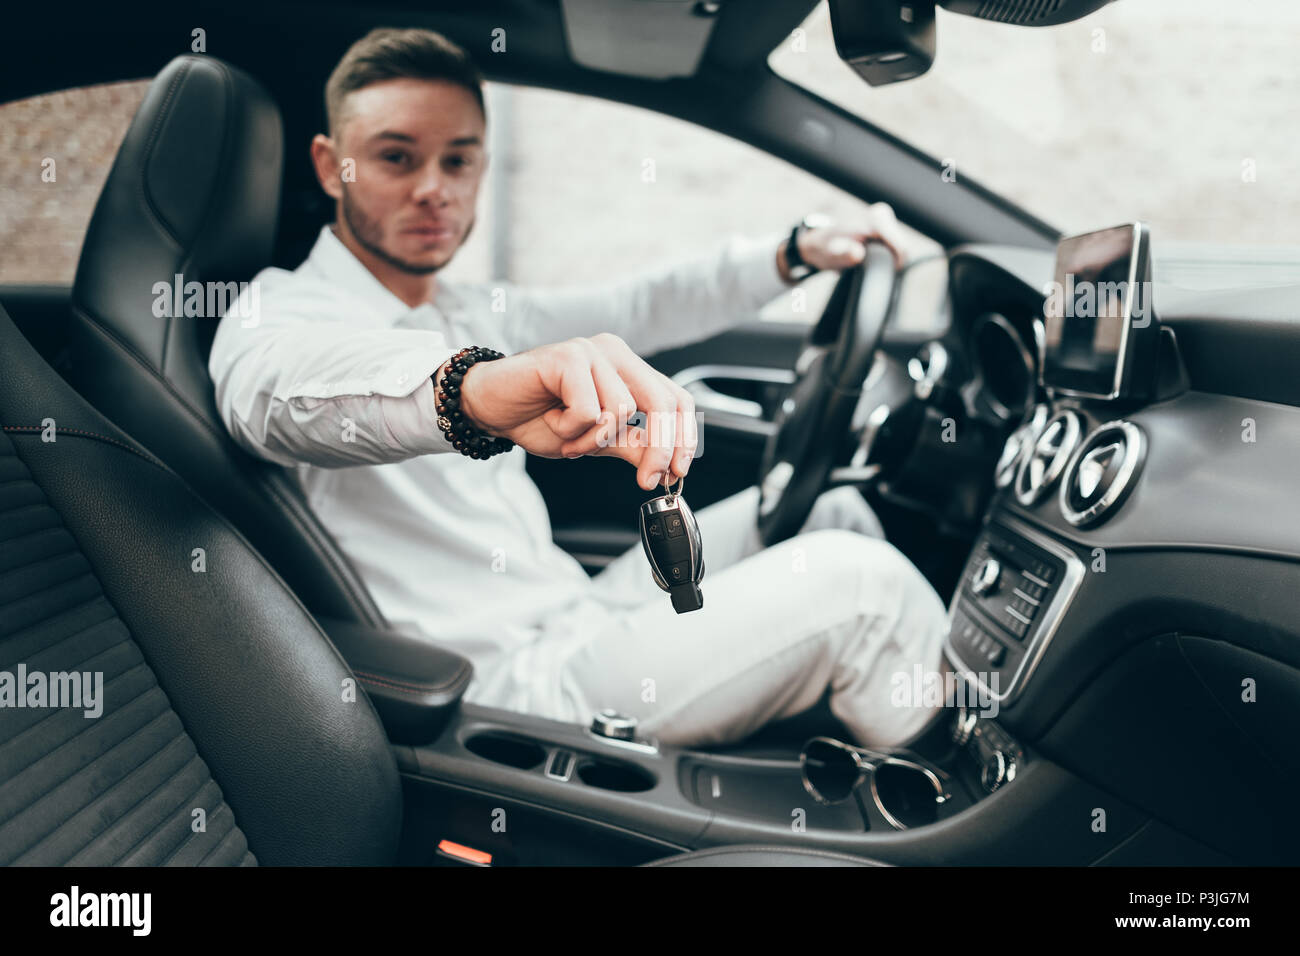 Handsome Young Man Showing Car Keys In His Newly Bought Auto Sitting